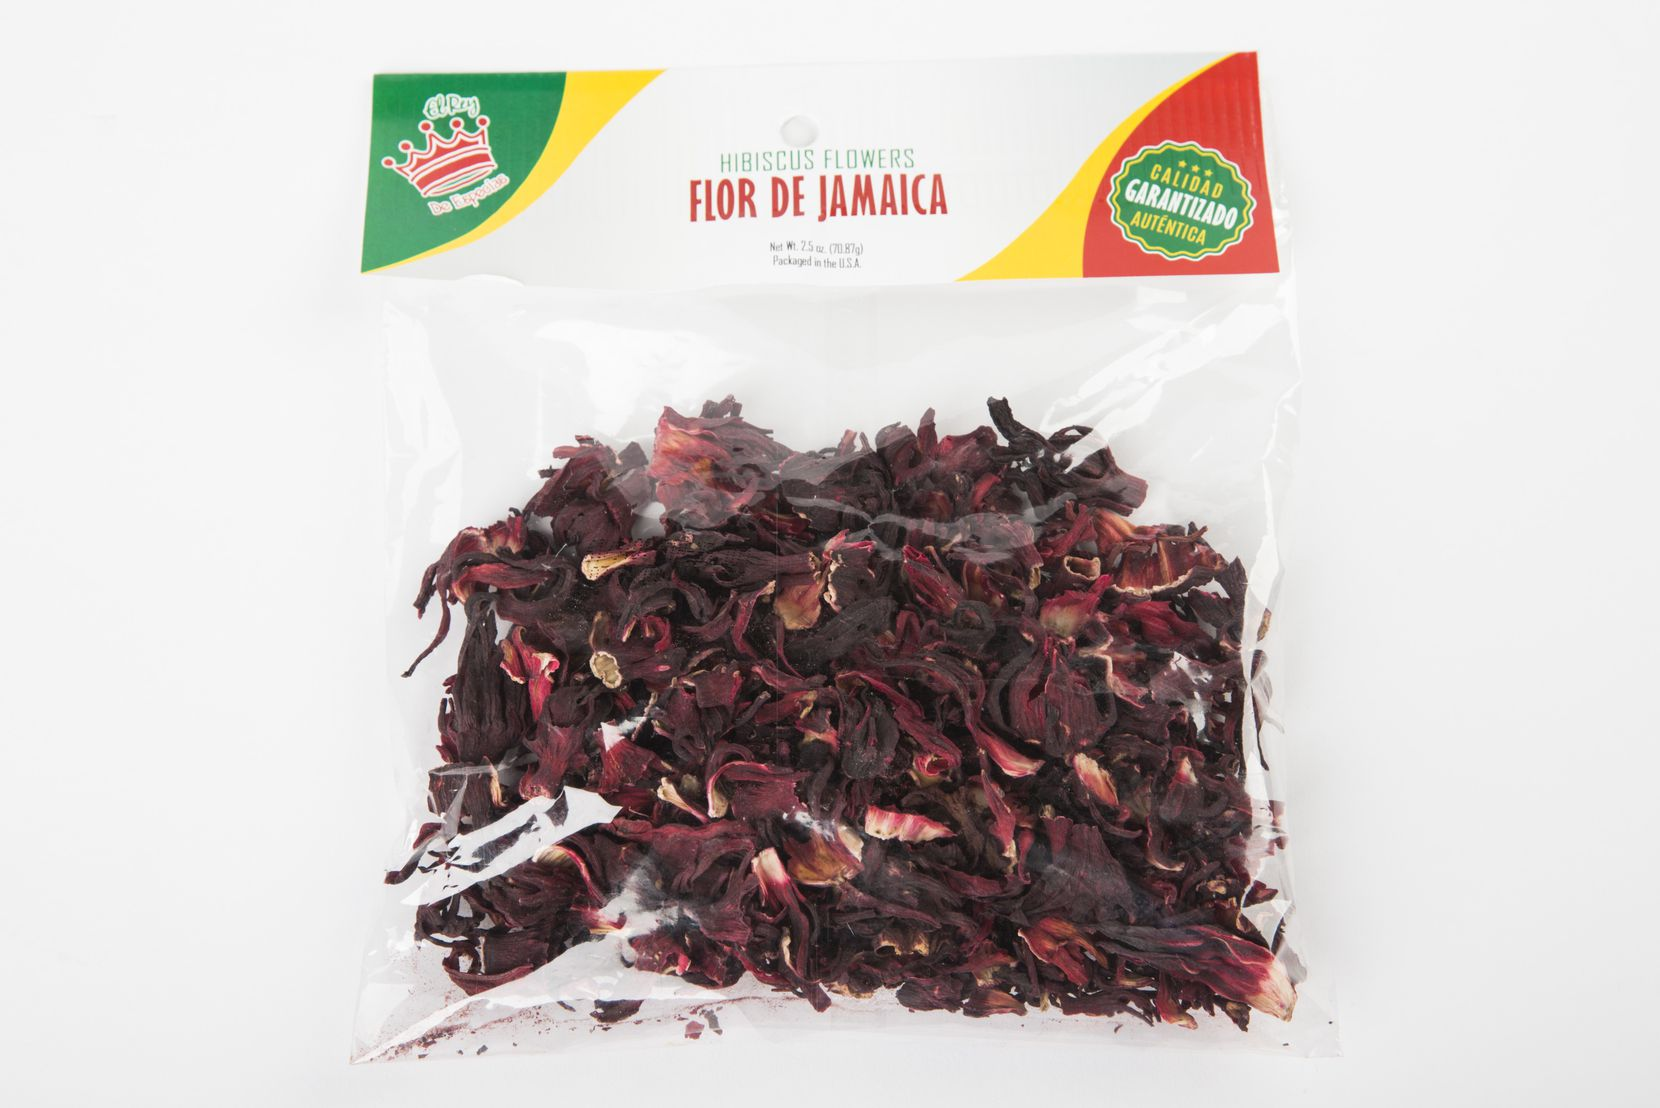 Dried hibiscus flowers are also known as flor de Jamaica.